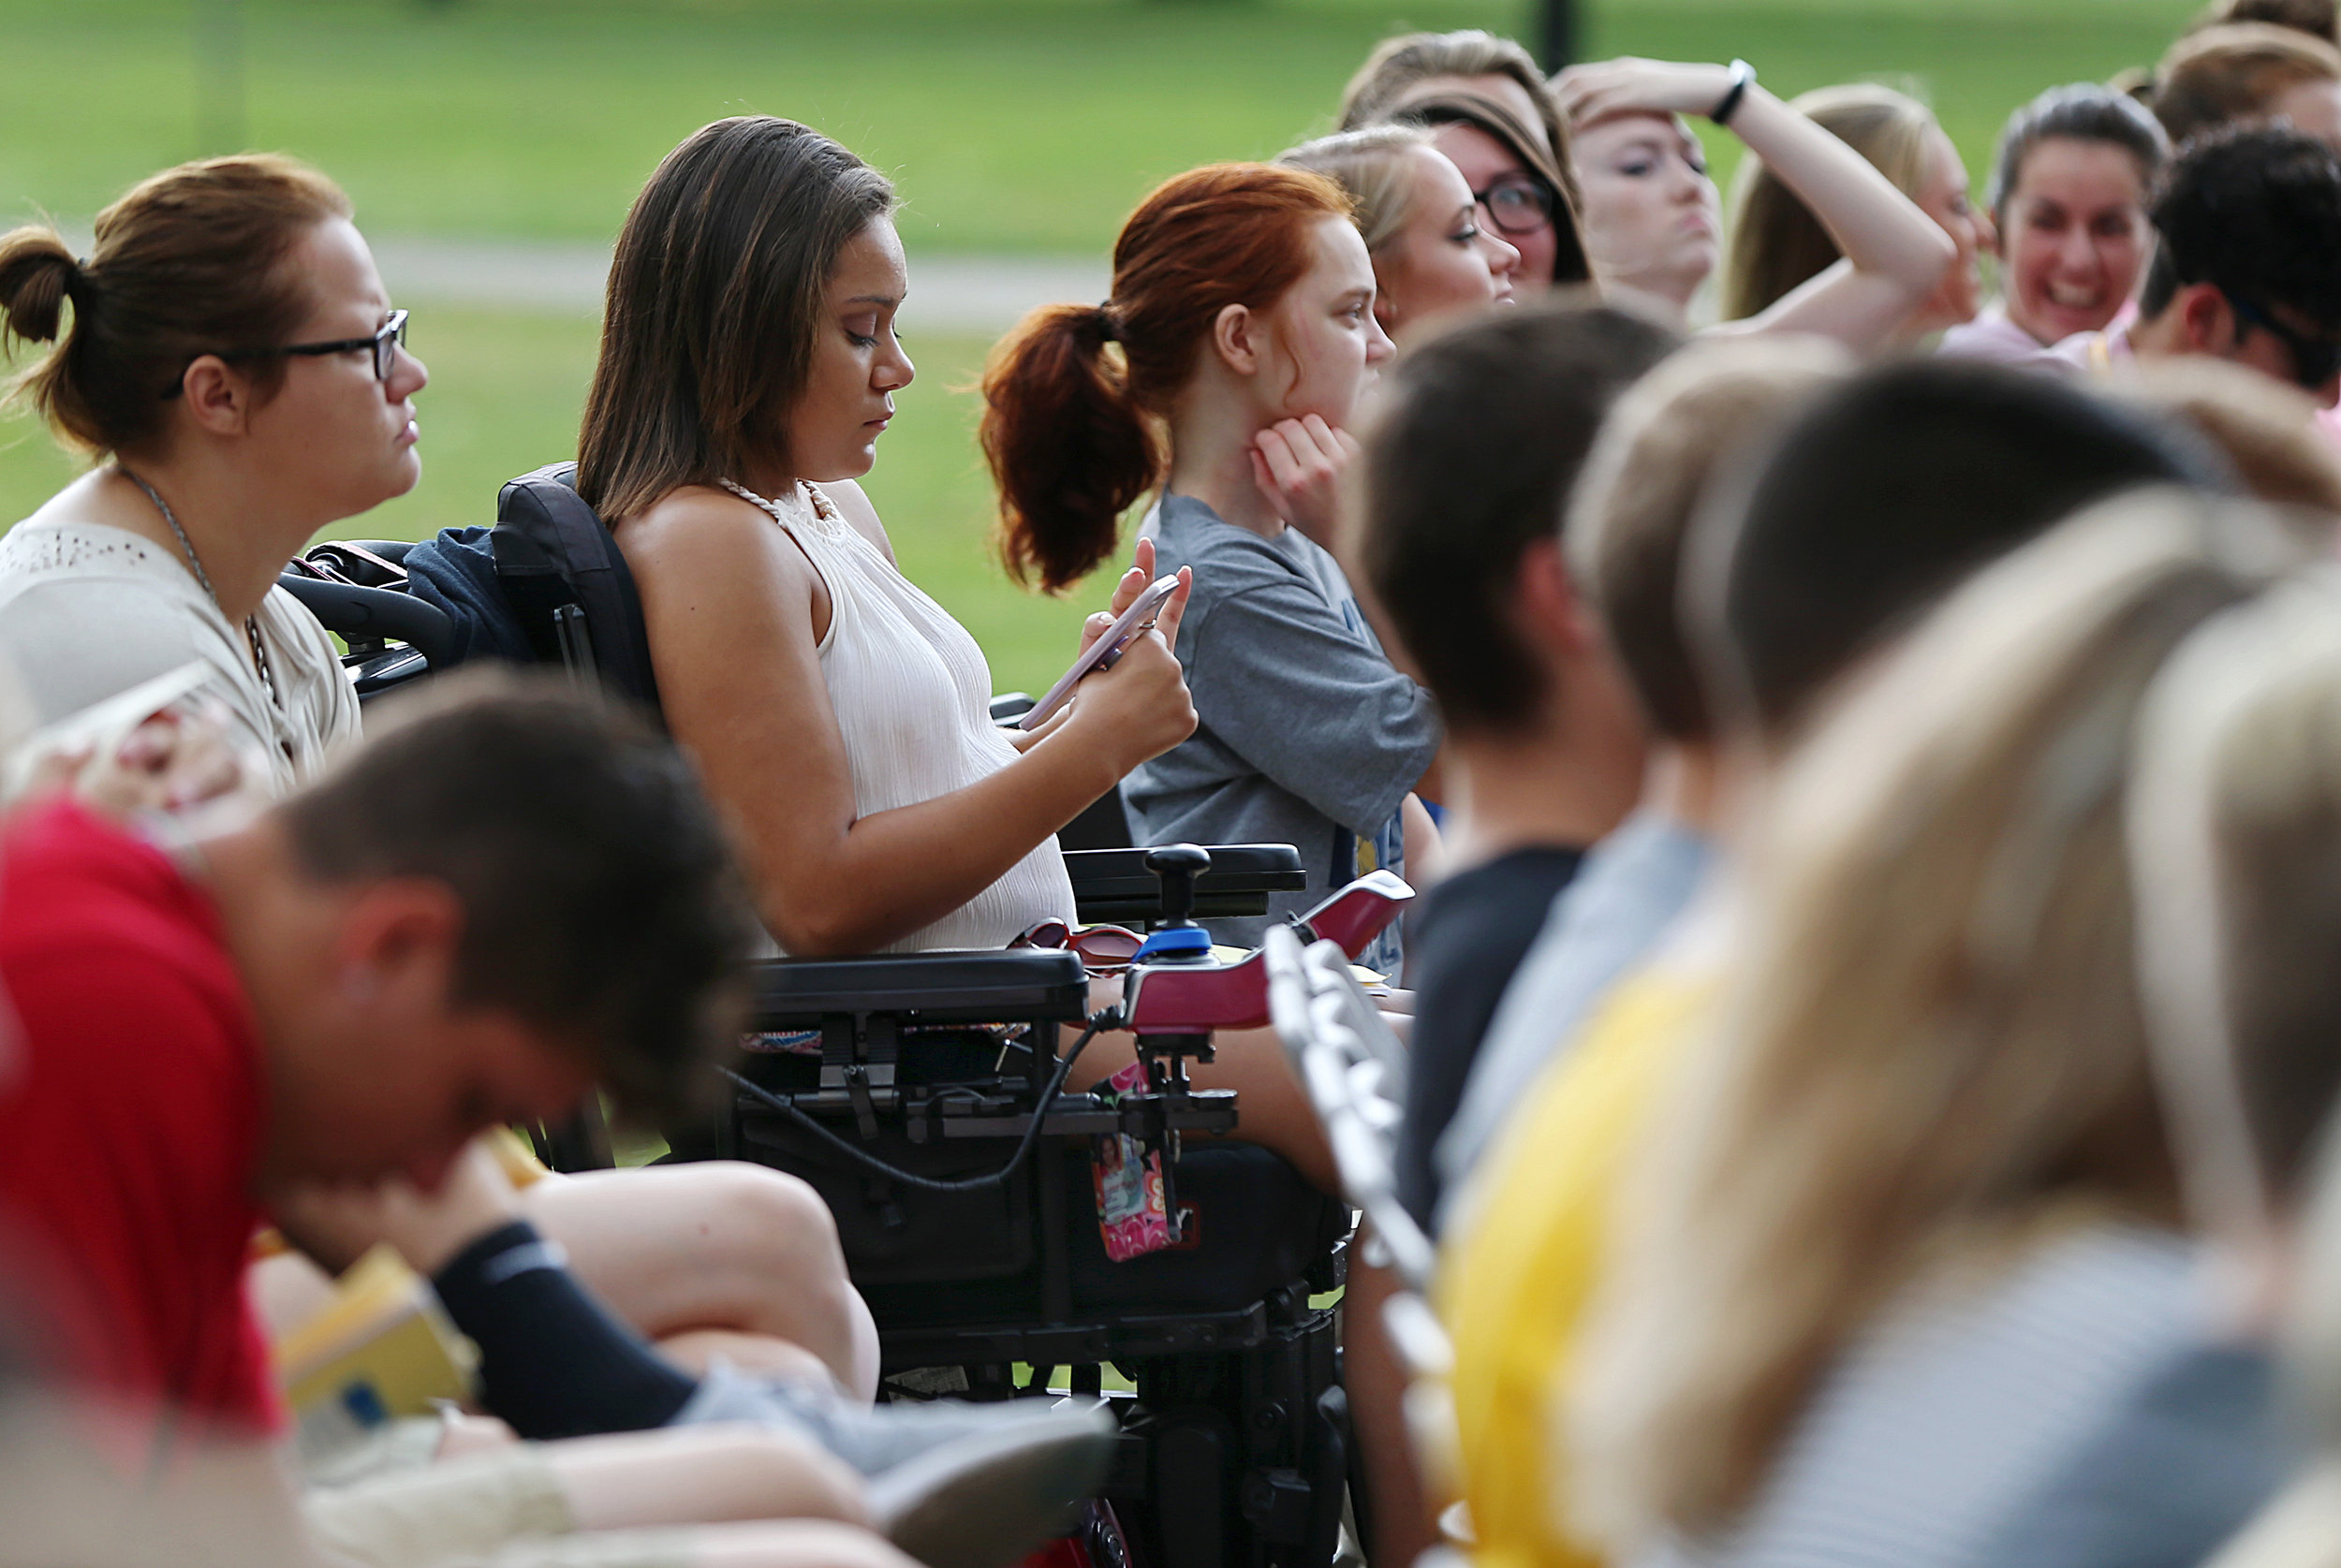 Huff waits for the annual bell ceremony to begin at Franklin College on the final day of freshmen orientation week. Huff says she misses the tight social circle and support system that she had at Ben Davis High School, but likes the independent nature of college.